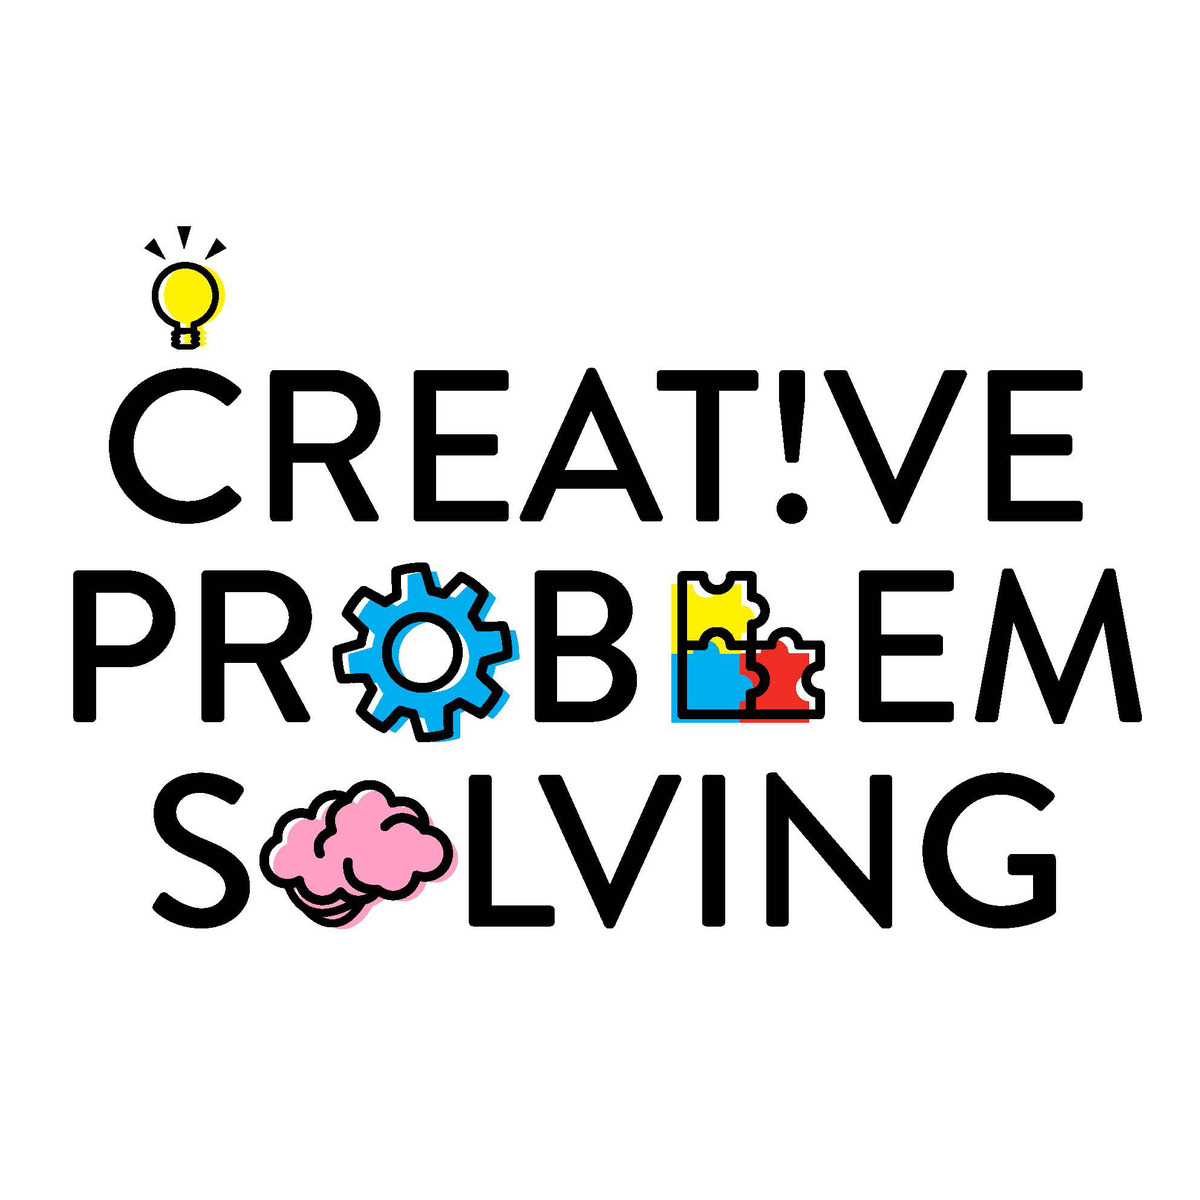 Free Online Course: Creative Problem Solving from Coursera